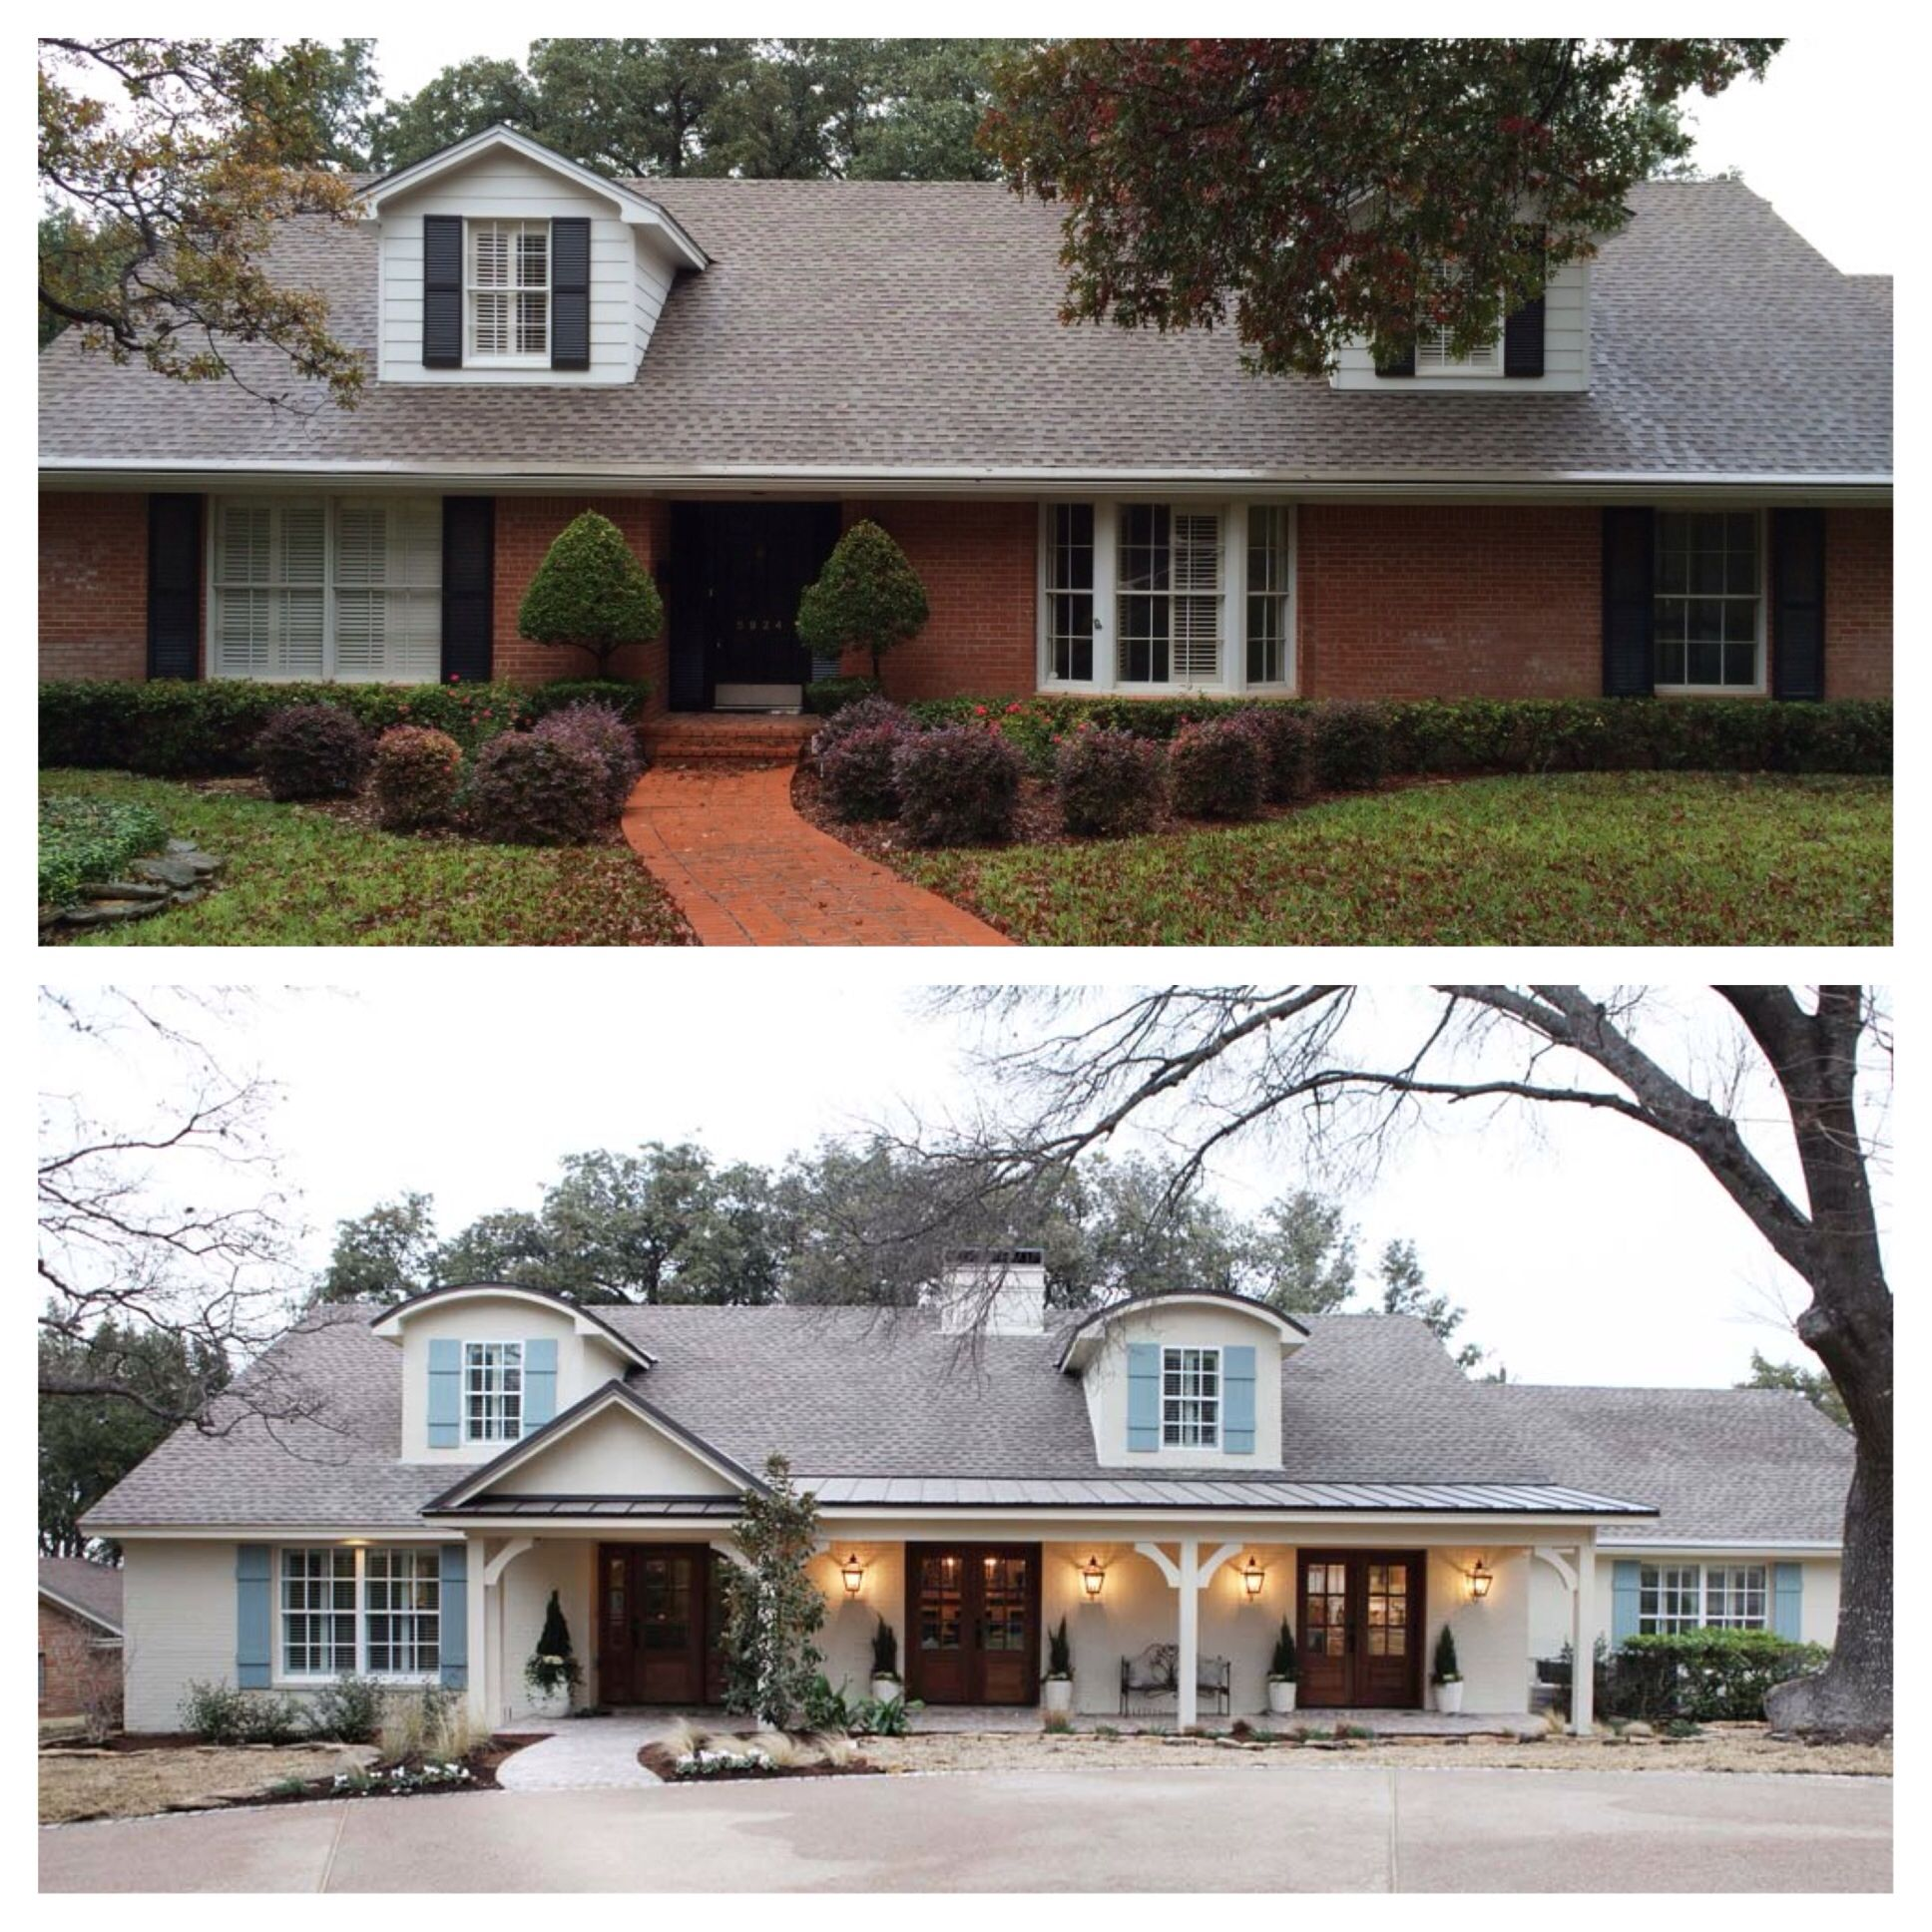 How to transform a tired red brick boring ranch home exterior ...